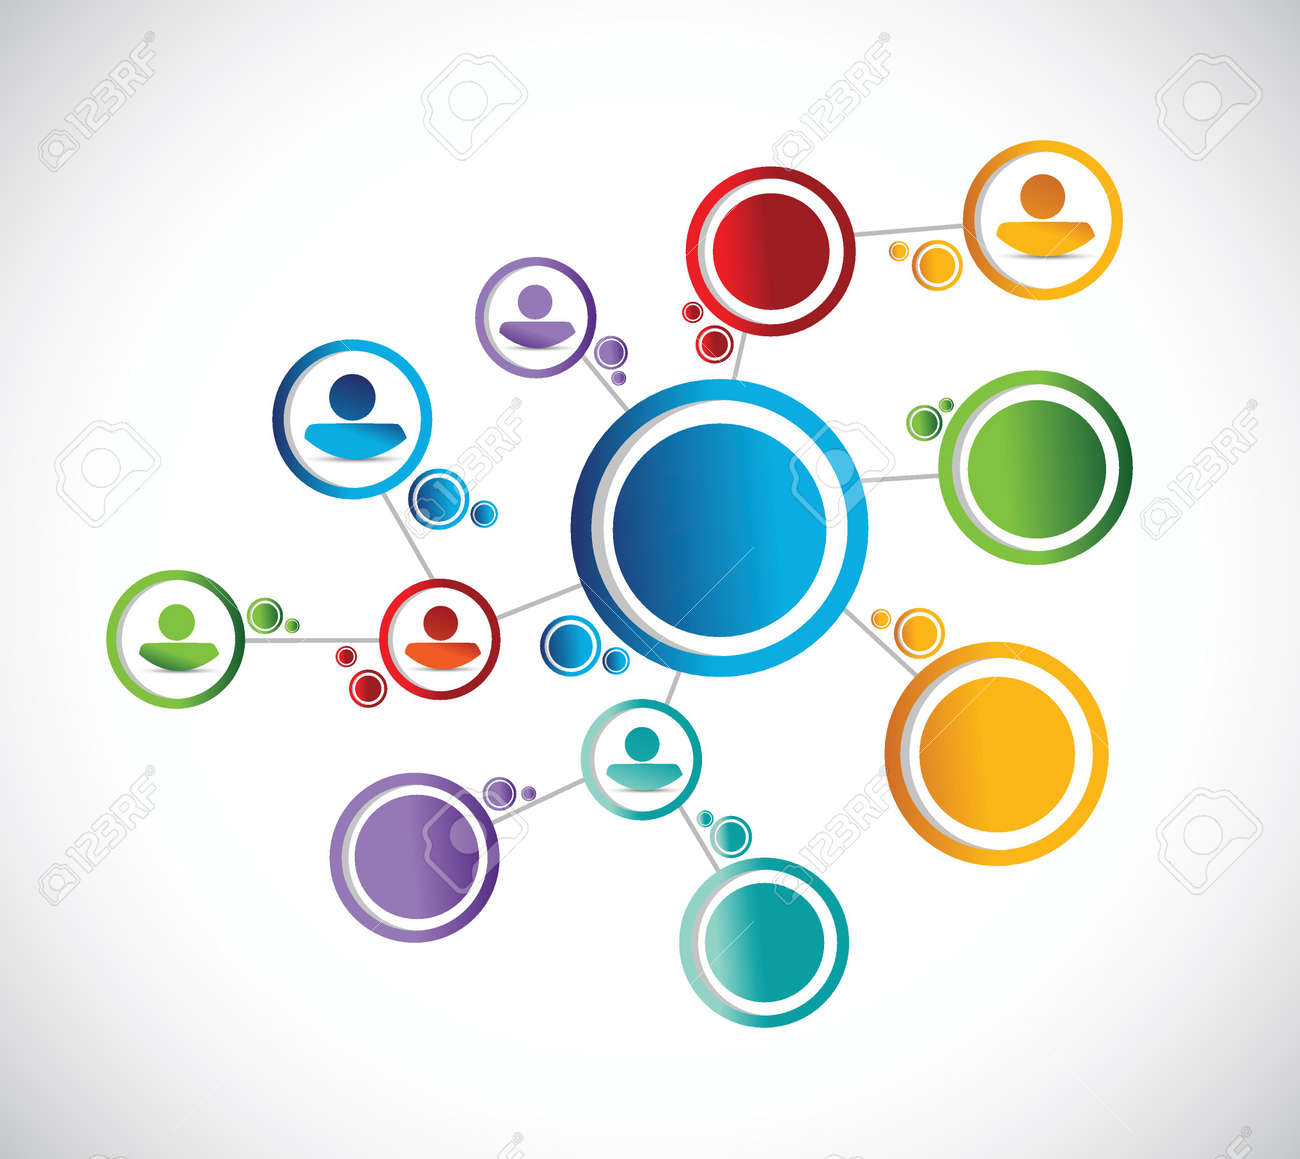 Network Connection Diagram Color People Illustration Design Over A White Background Stock Vector 28794250